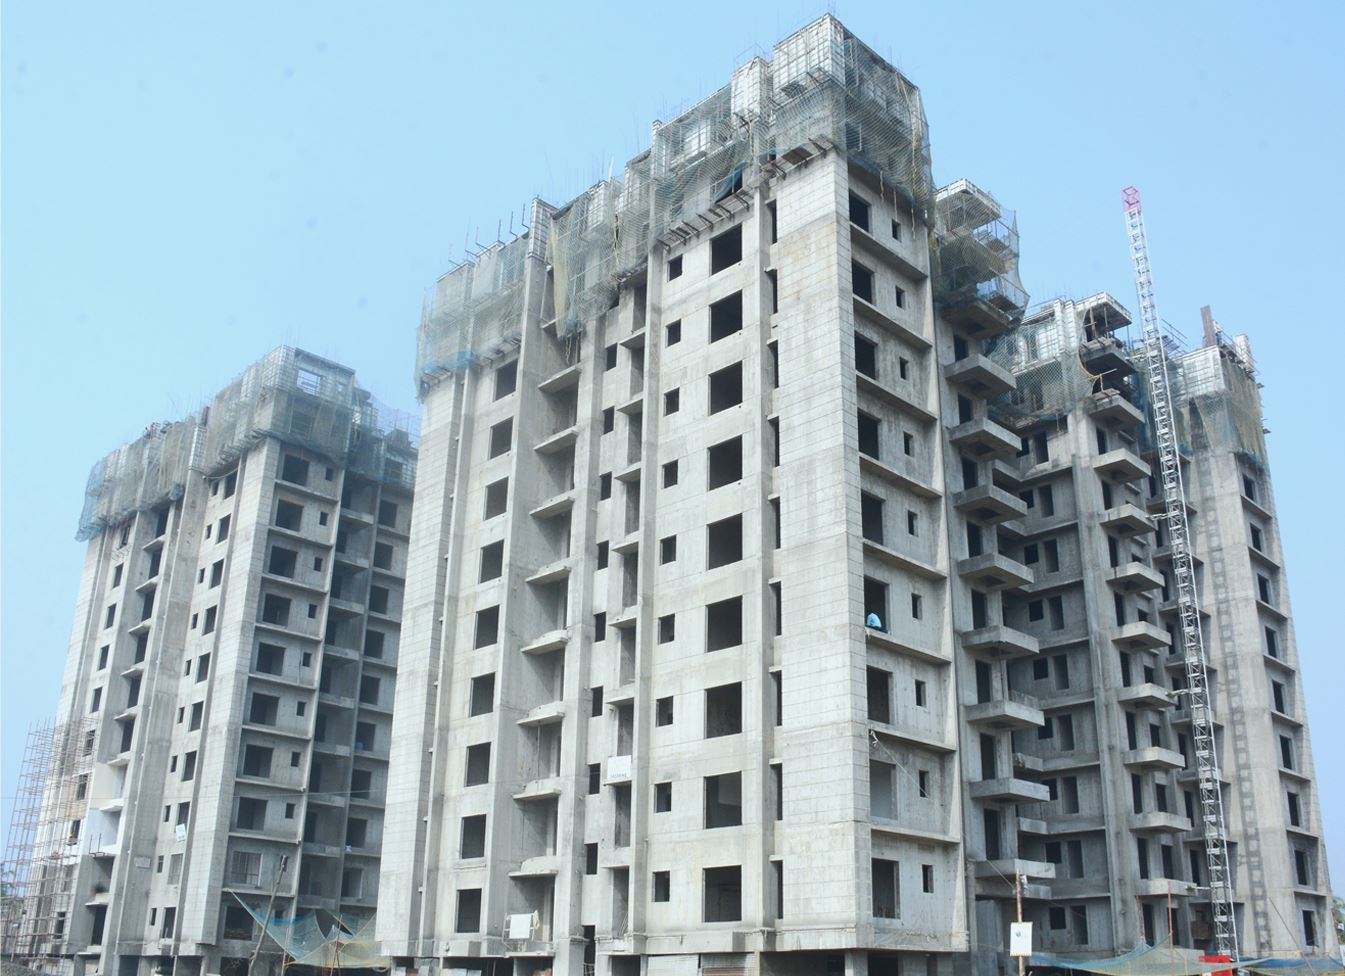 Aluminum Formwork System Project: High-rise residential for CSCEC - ADTO Group